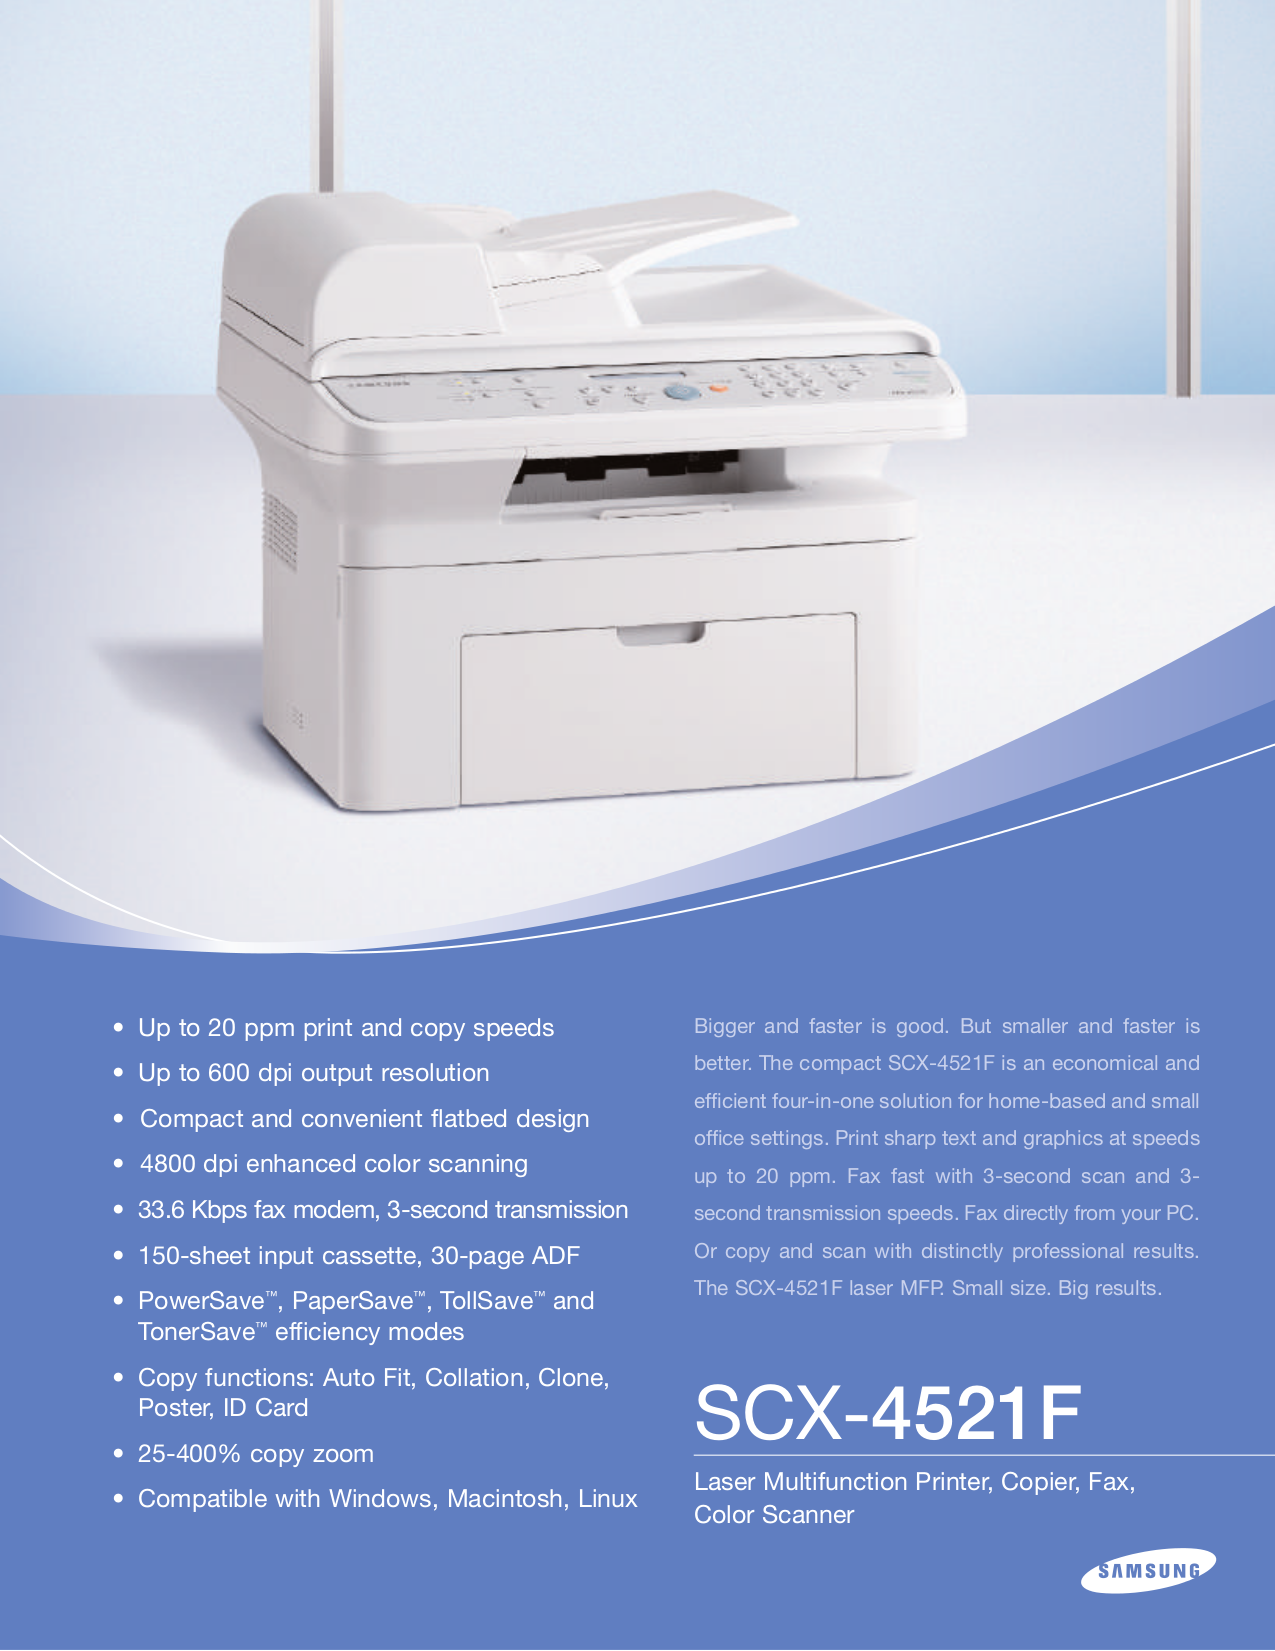 download free pdf for samsung scx 4521f multifunction printer manual rh umlib com Samsung SCX 4521F ManualDownload Samsung SCX 4521F Driver